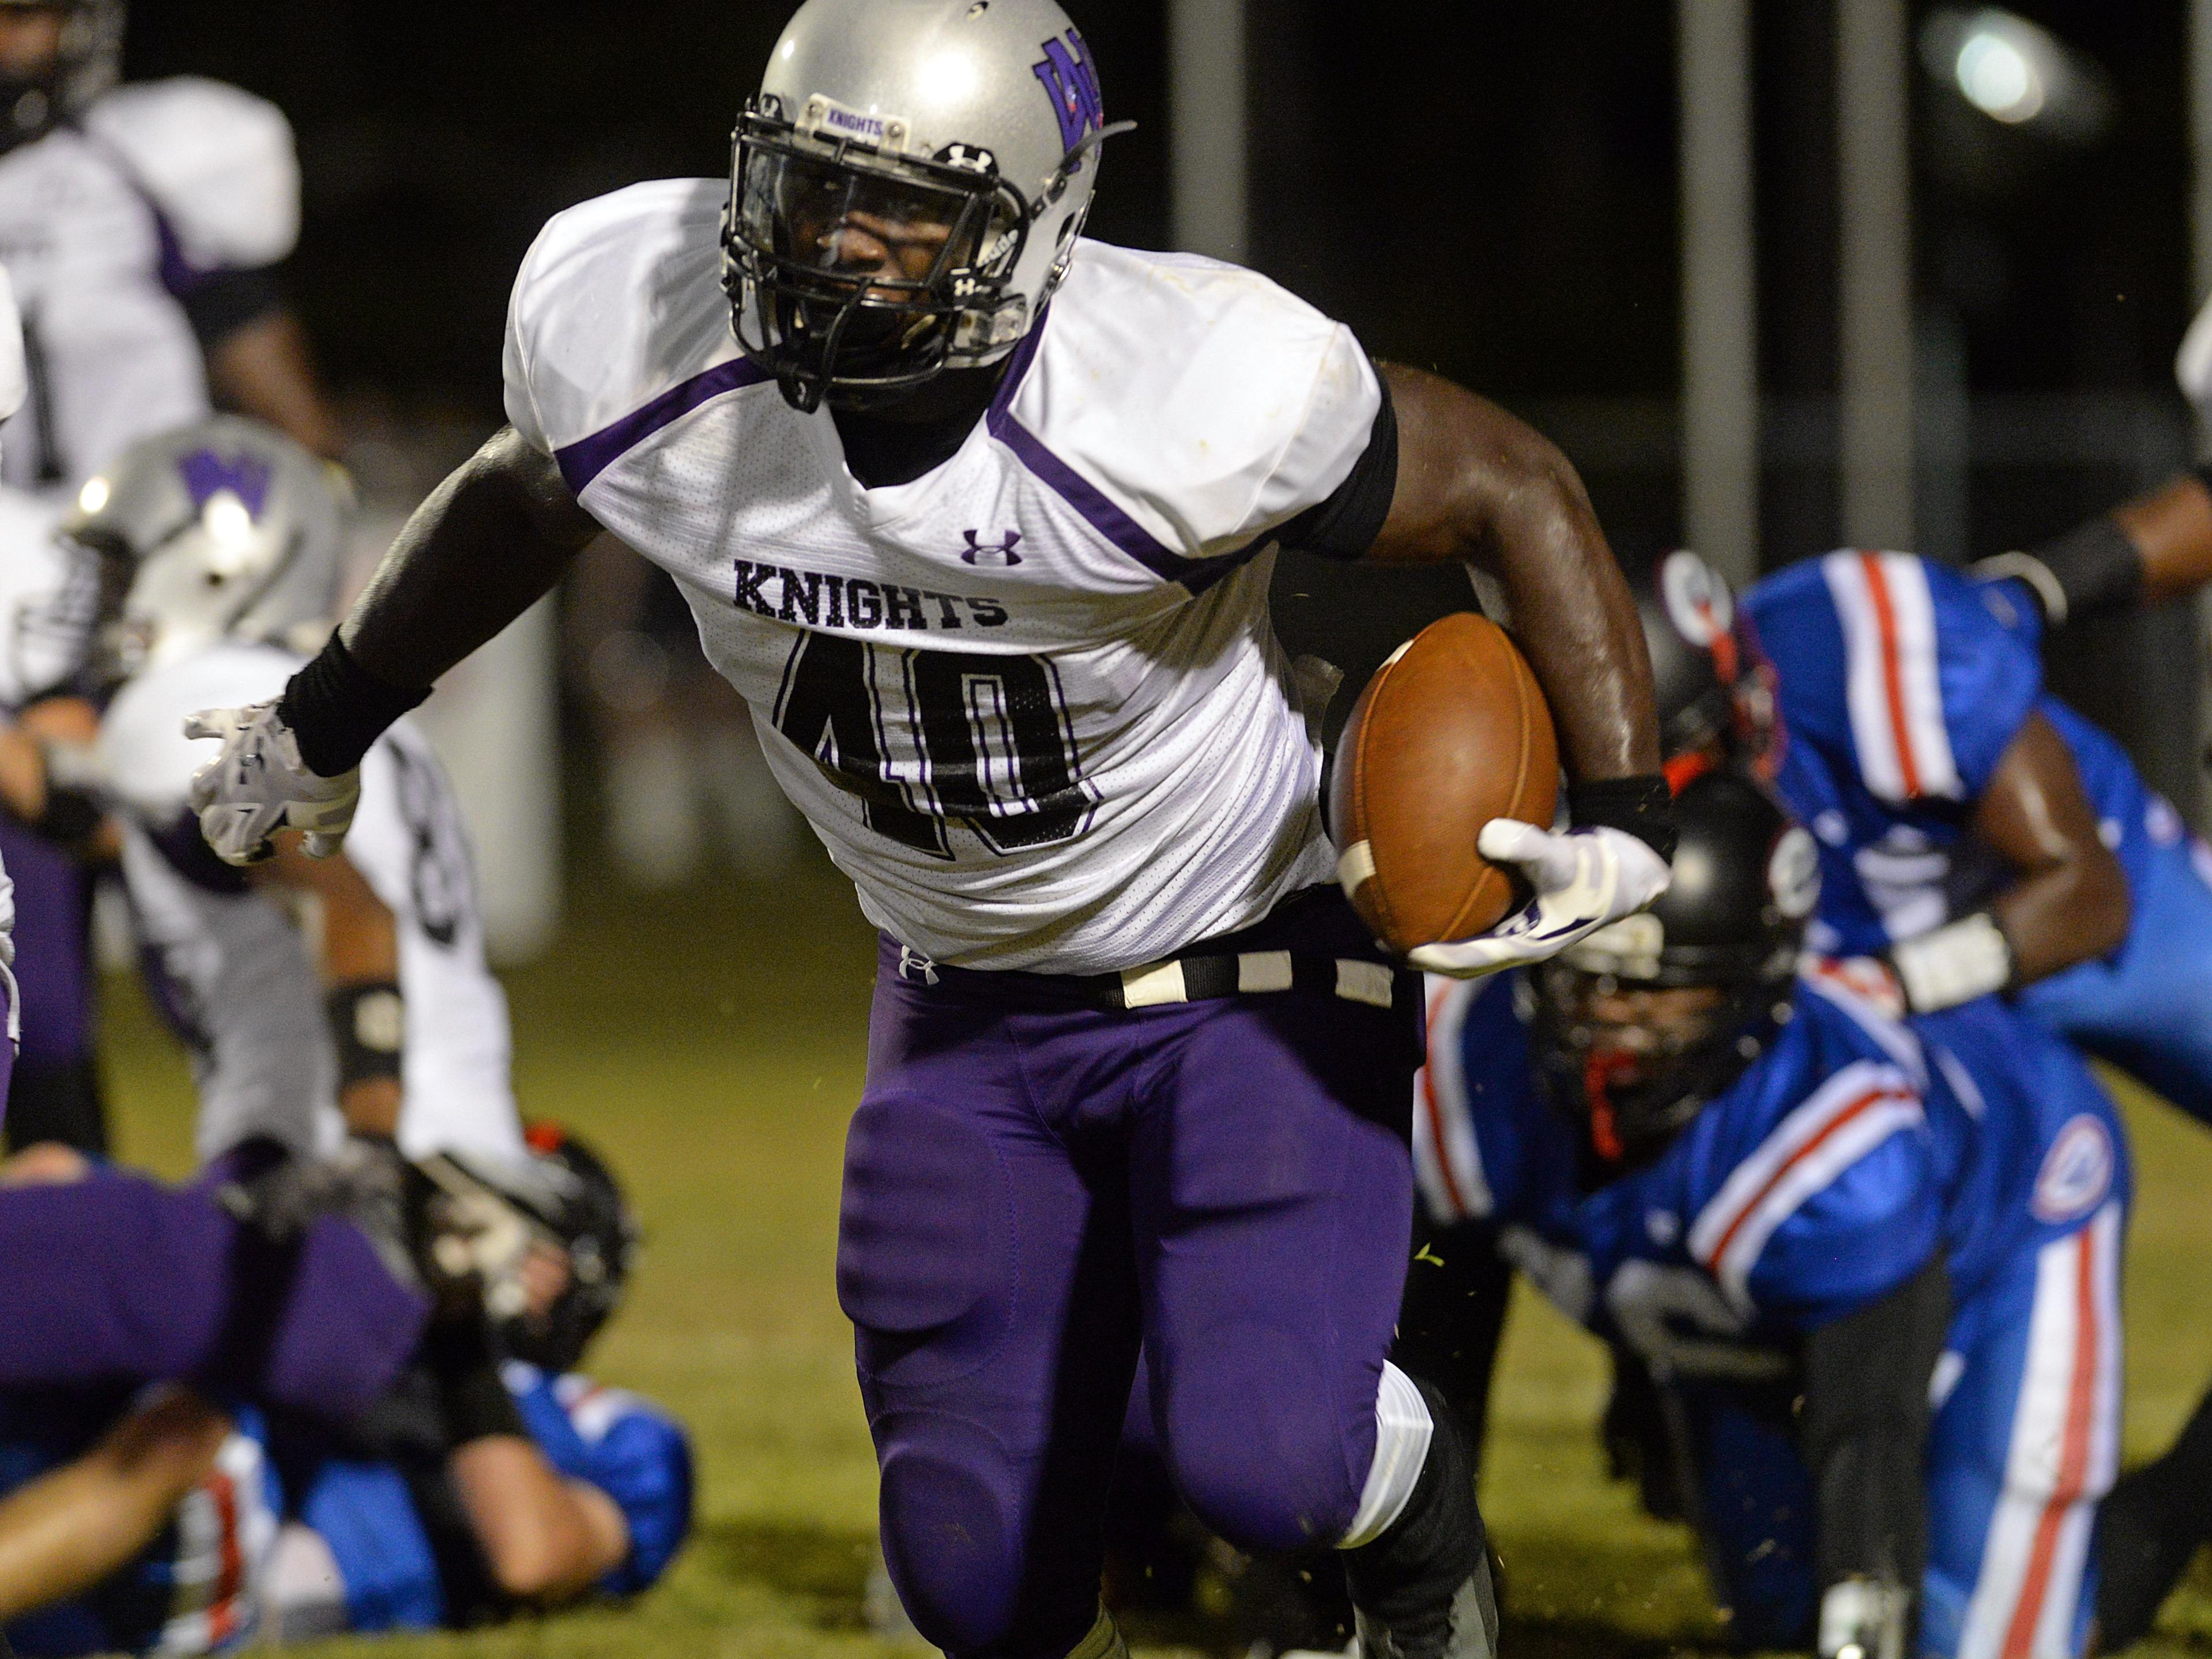 North Webster's Devin White was arrested on carnal knowledge of a juvenile charges.